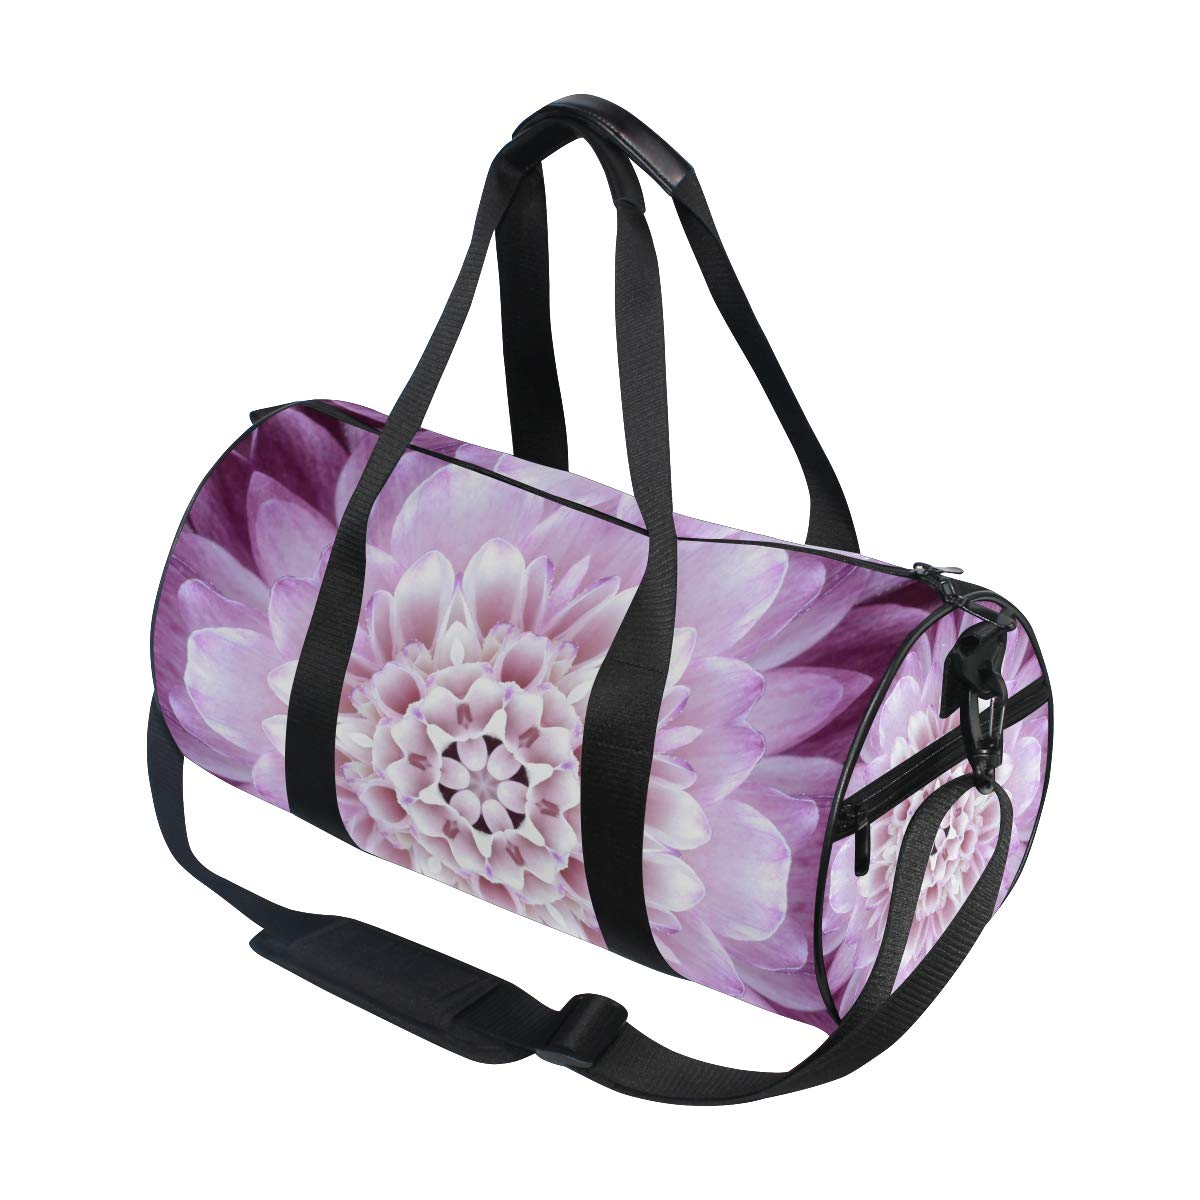 Mandala Bohemian Yoga Sports Gym Duffle Bags Tote Sling Travel Bag Patterned Canvas with Pocket and Zipper For Men Women Bag by EVERUI (Image #3)